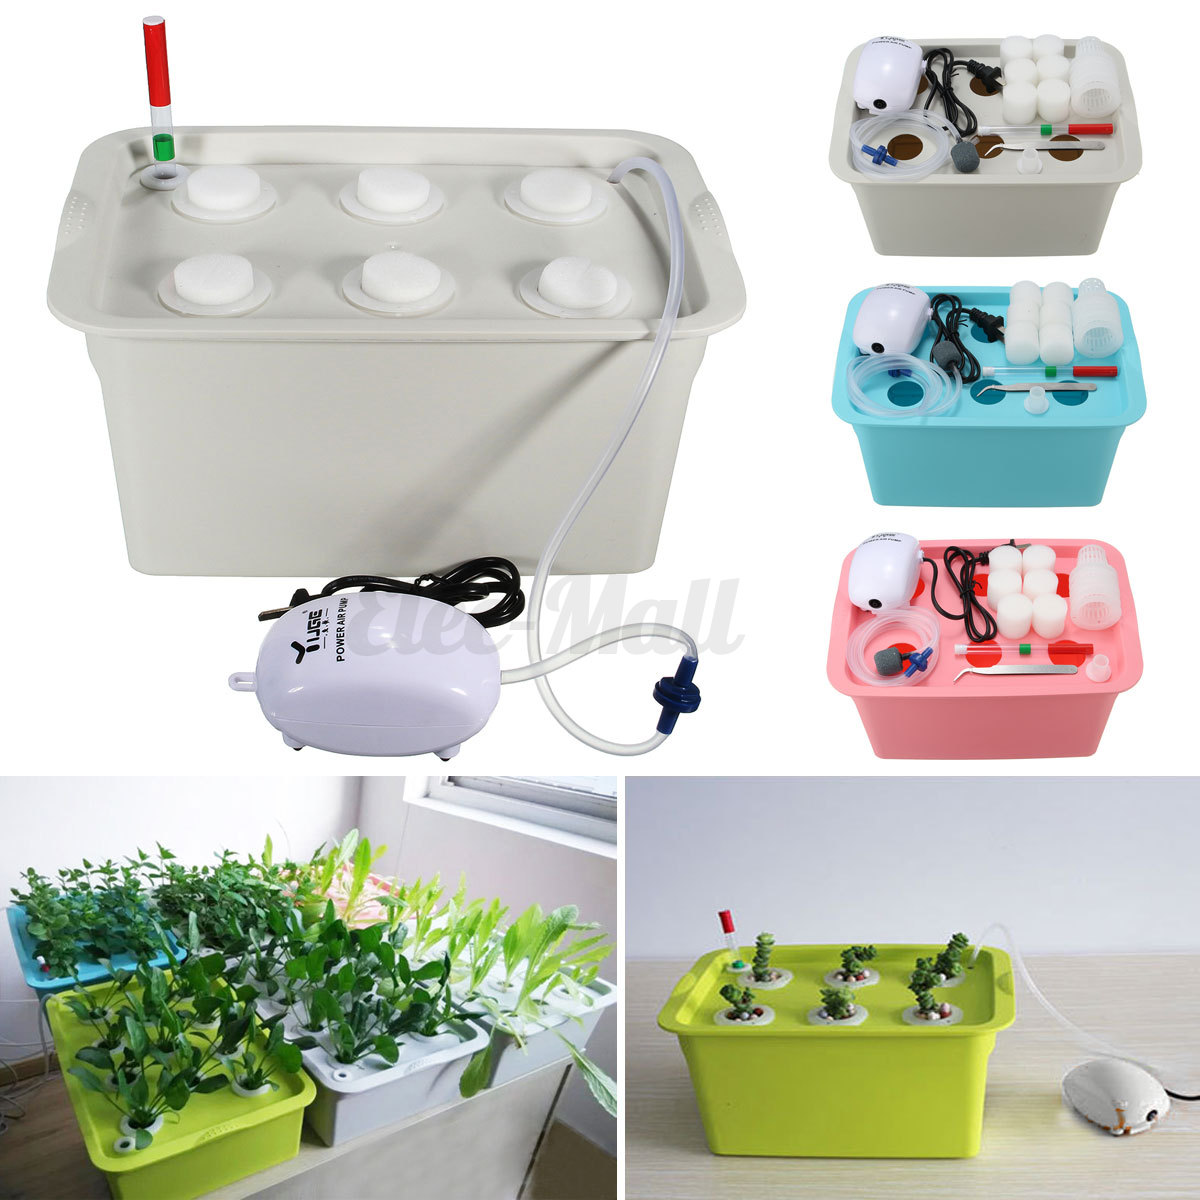 6 Holes Plant Site Hydroponic System Grow Kit Bubble Tub Air Pump ...